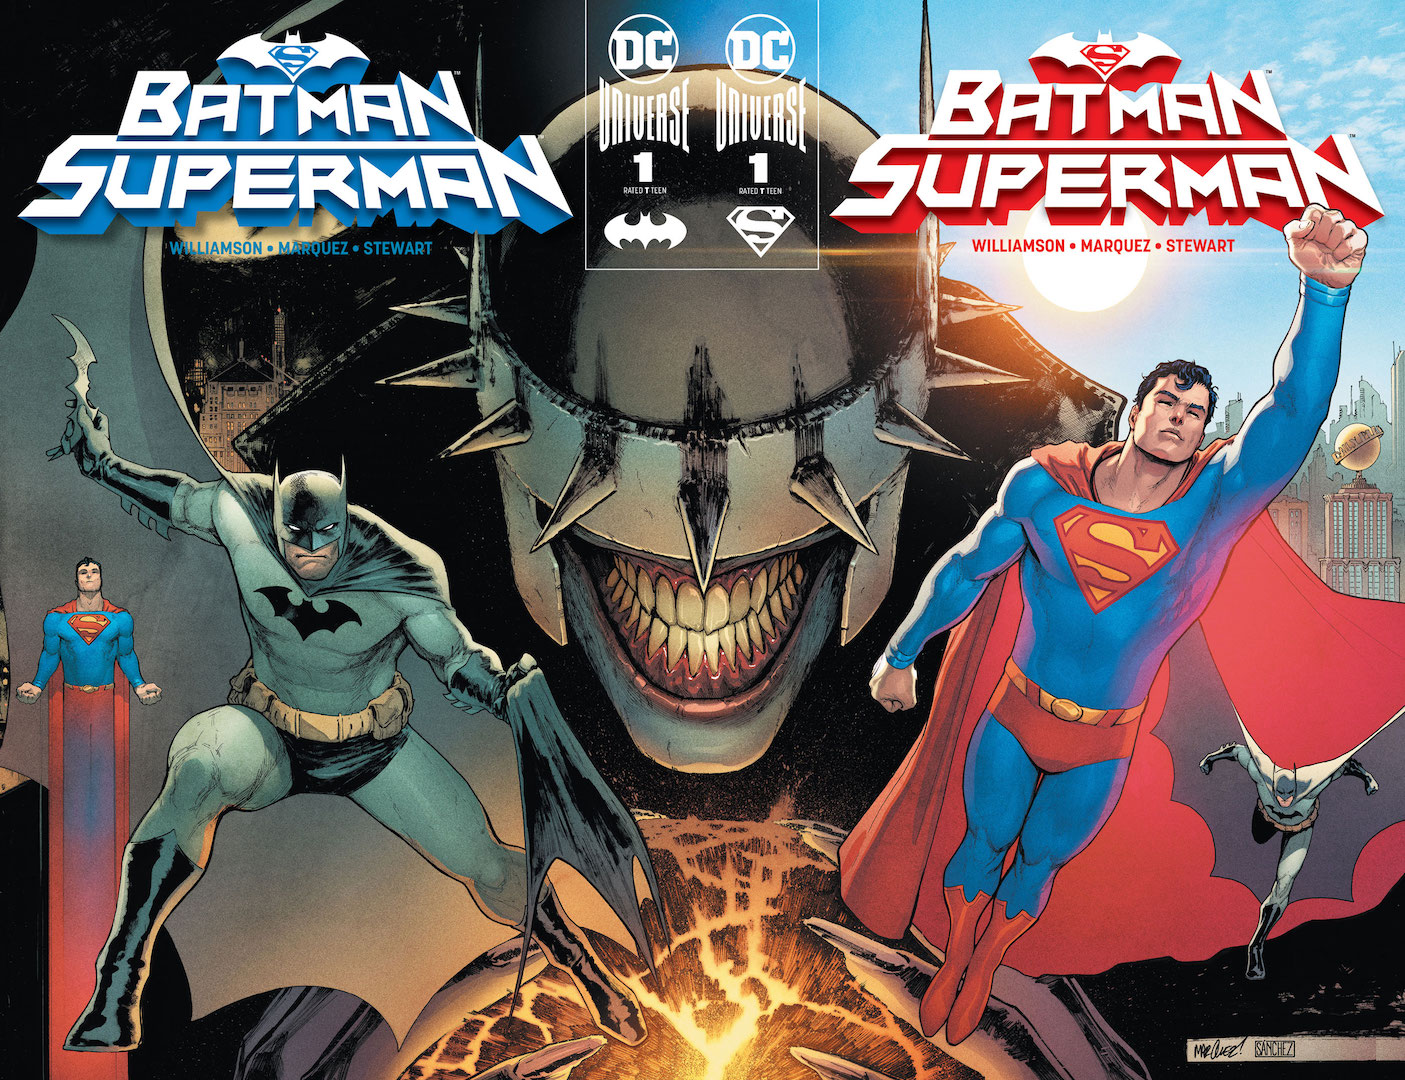 Batman and Superman must hunt down six infected heroes in the DCU this August